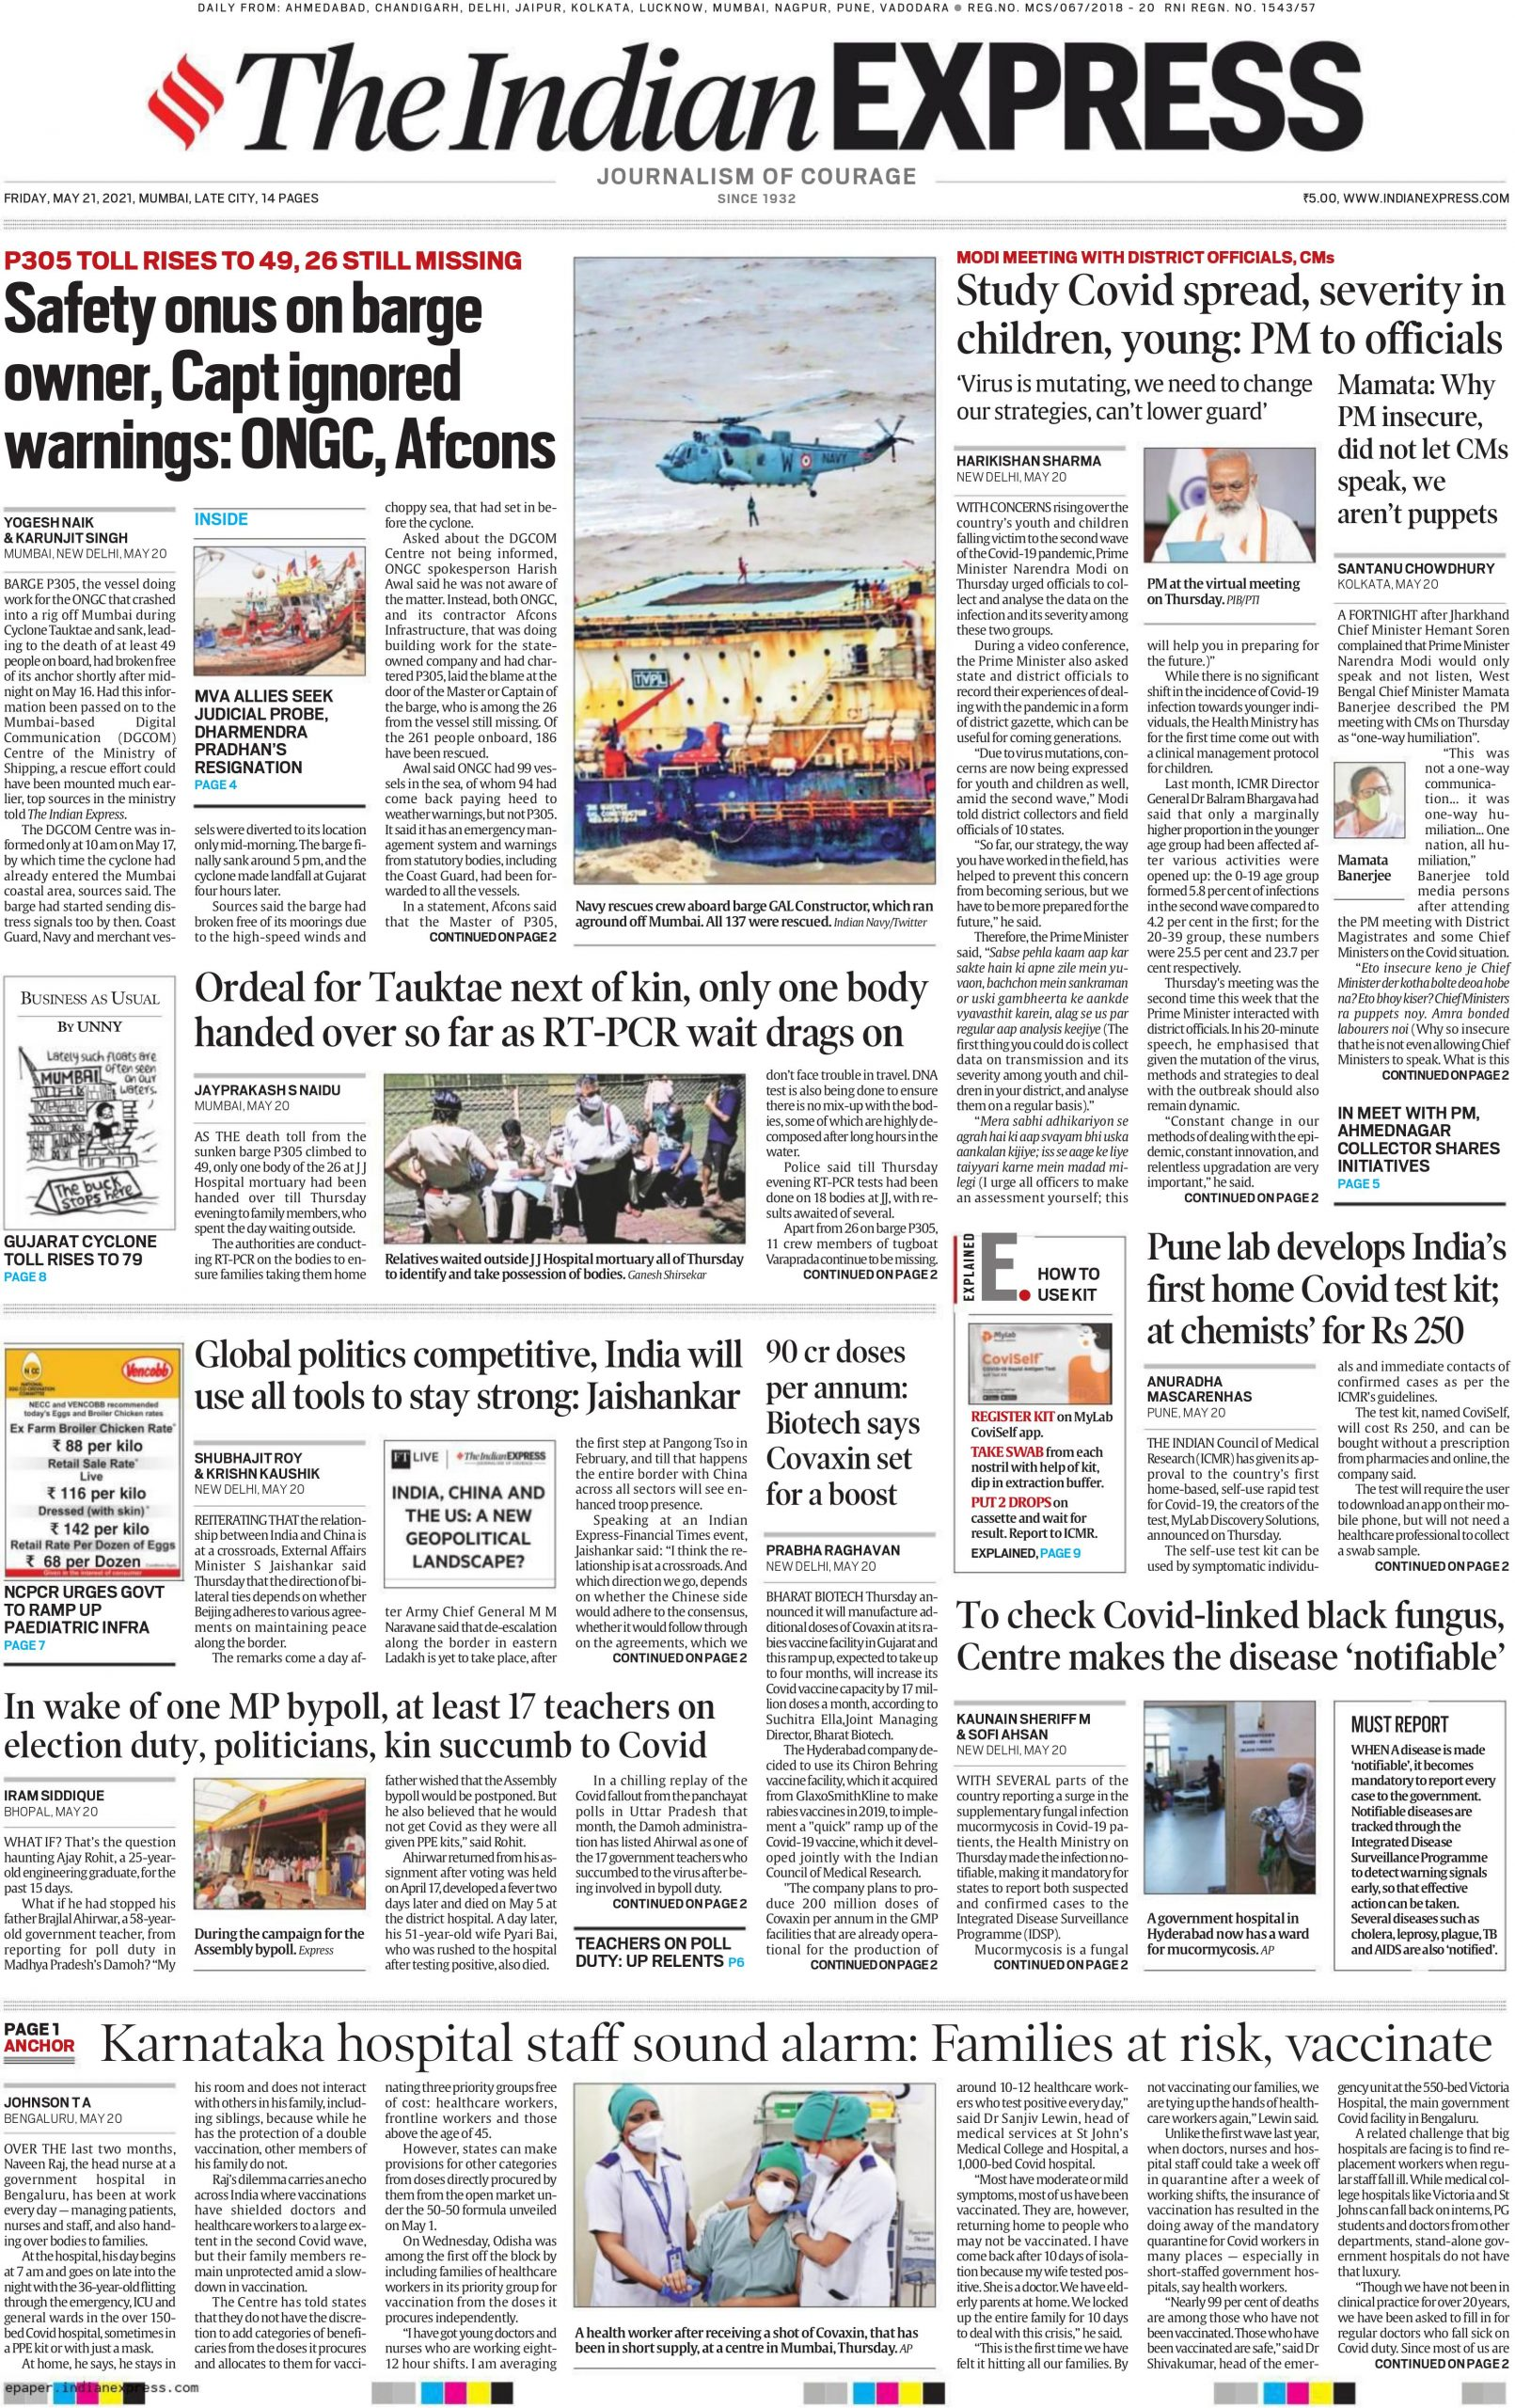 The Indian Express 21st May 2021